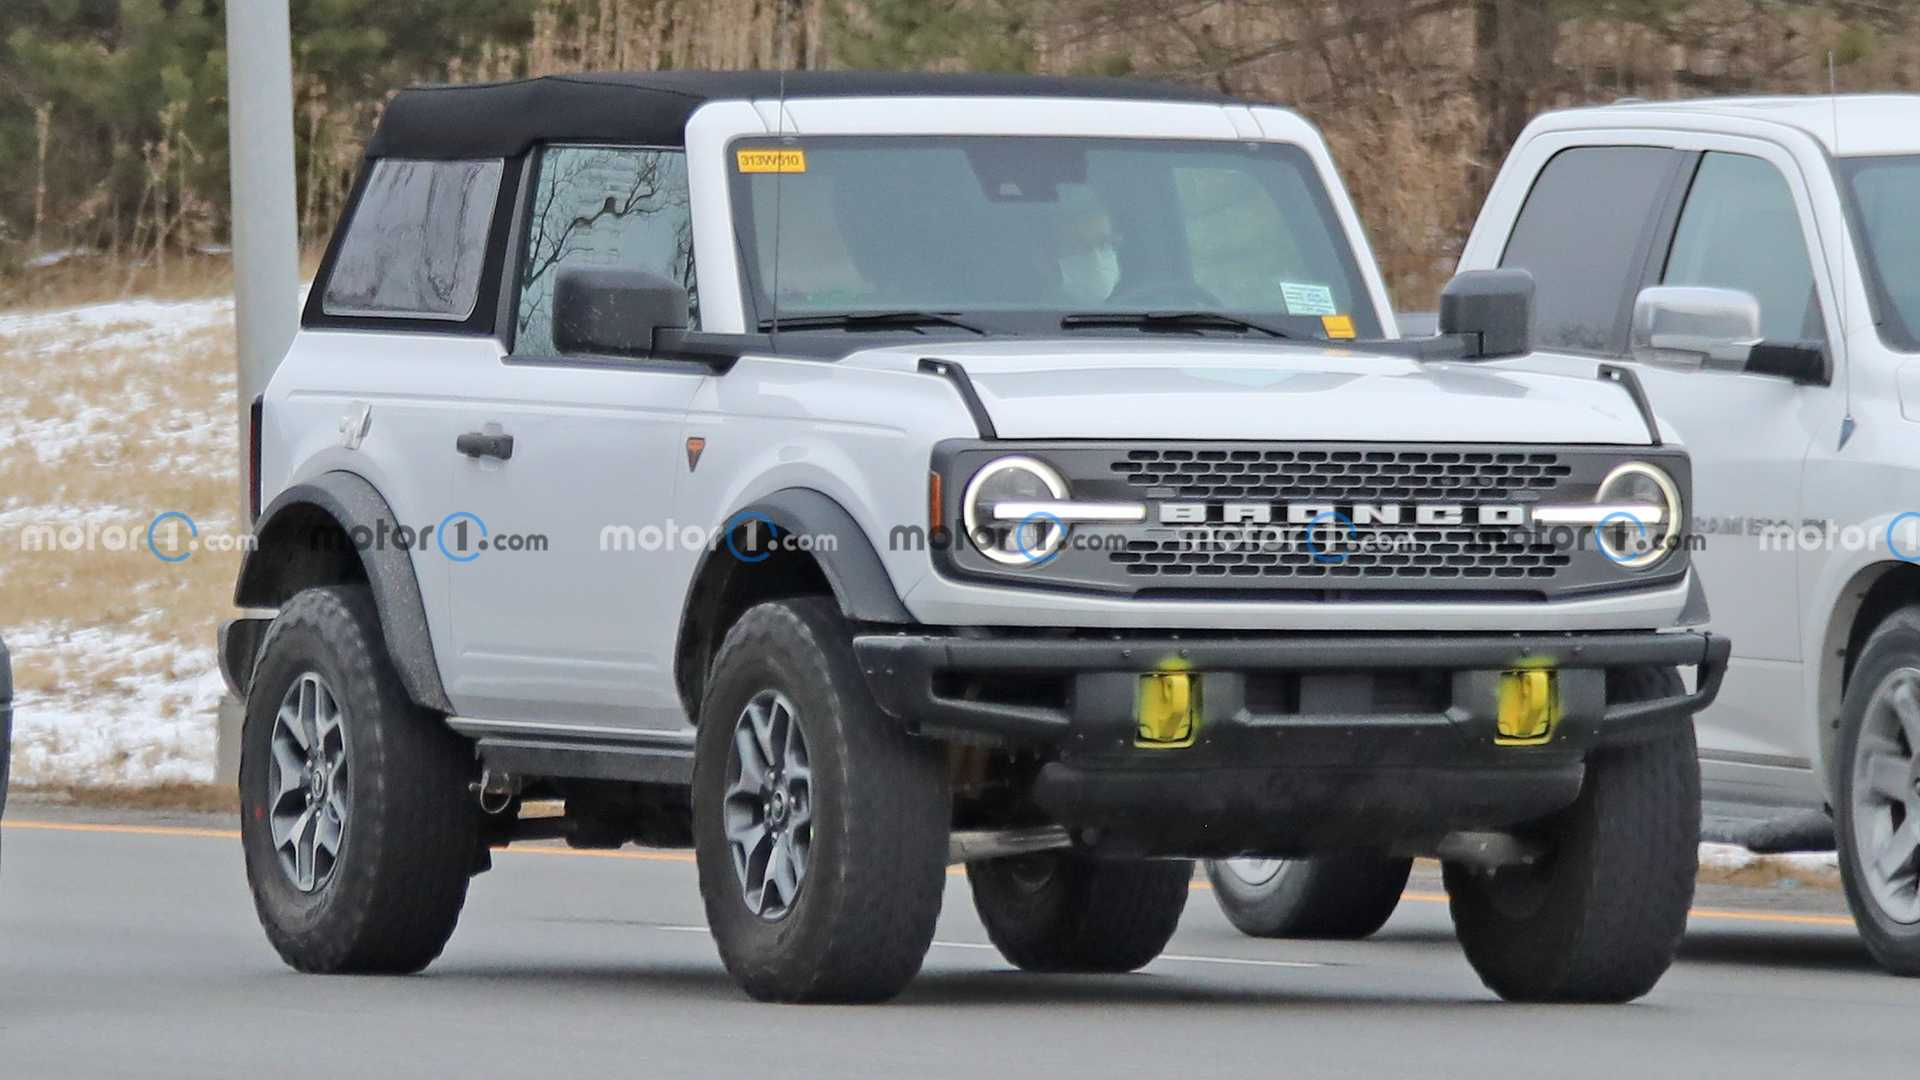 Ford Bronco Two-Door Soft Top Spy Photos Three Quarters